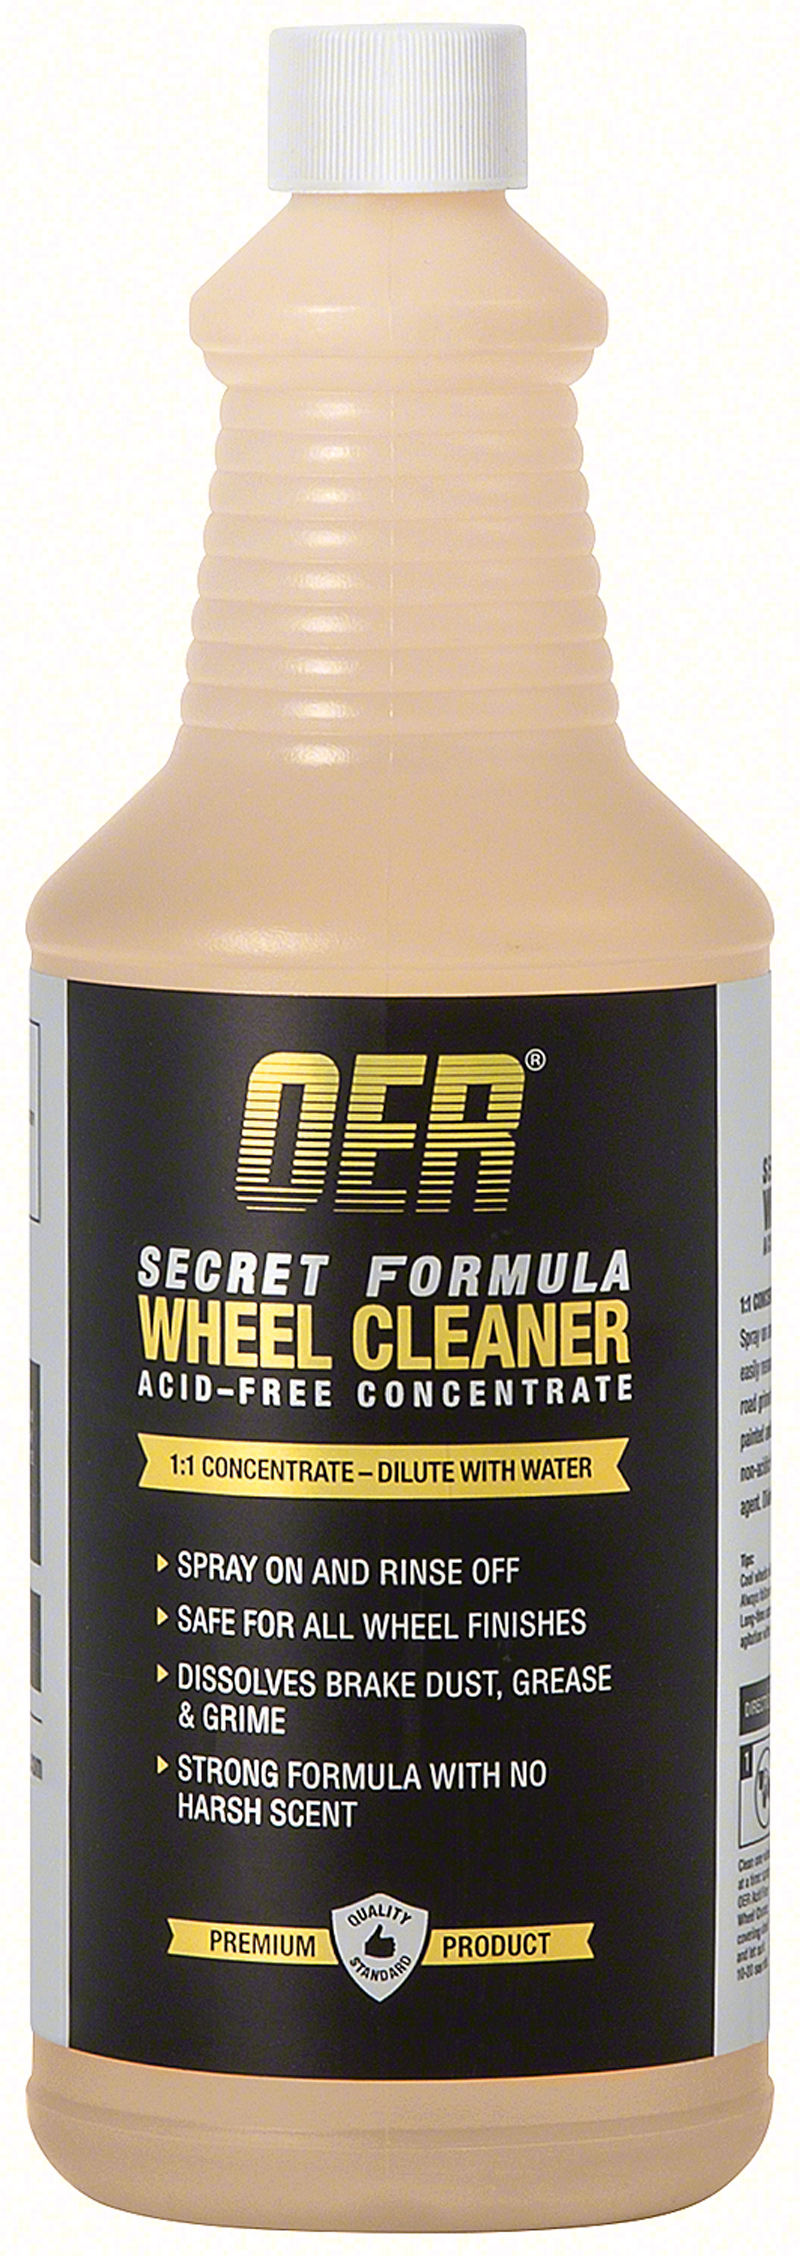 Mopar Parts | Car Care | Cleaning Supplies | Wheel and ...